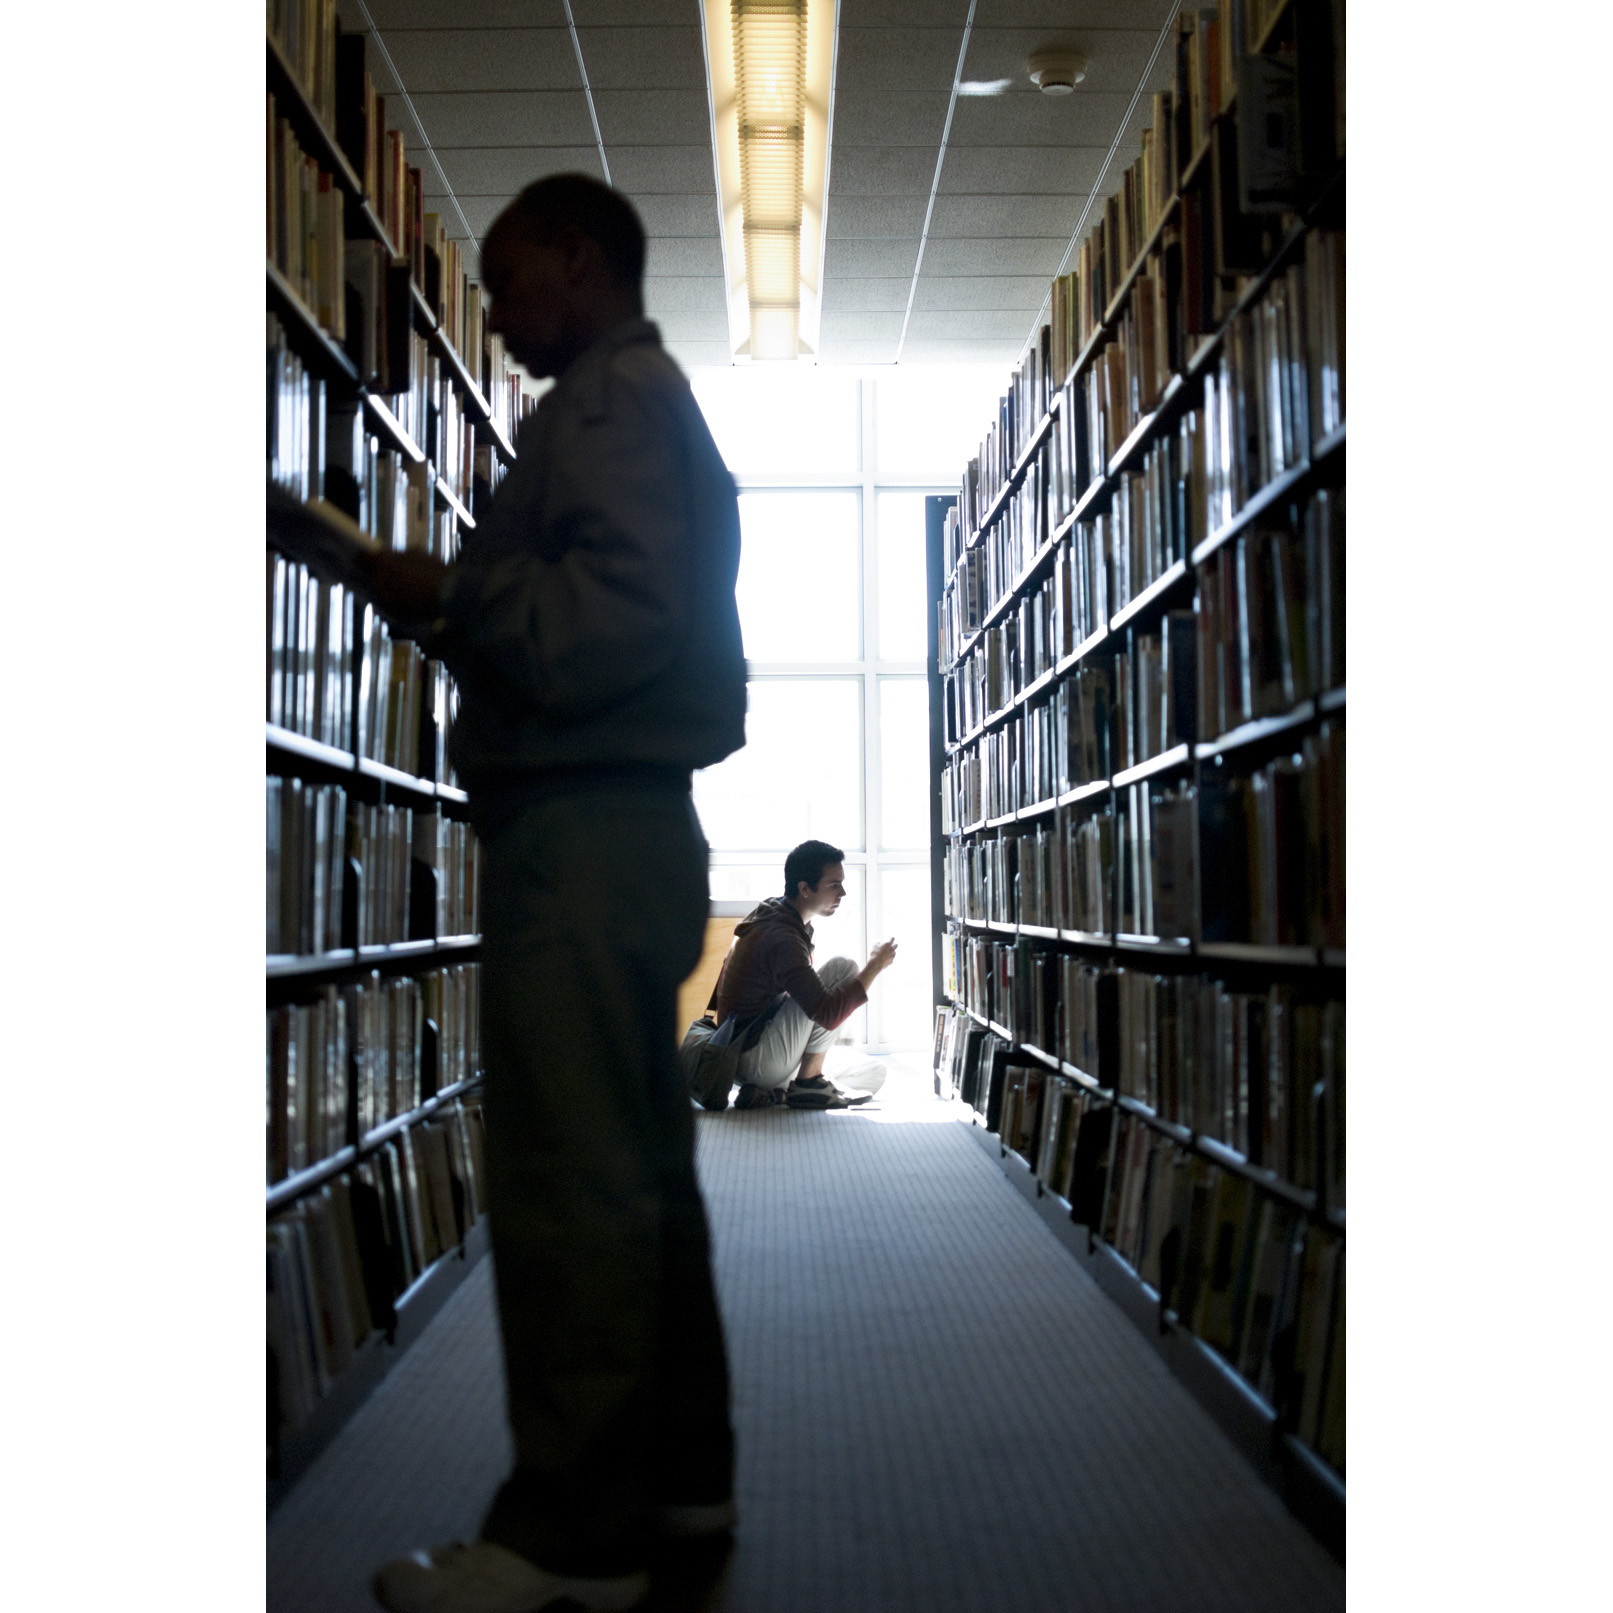 Ike Maldonado, right, looks for exercise books at the San Francisco Public Library's Main Branch.